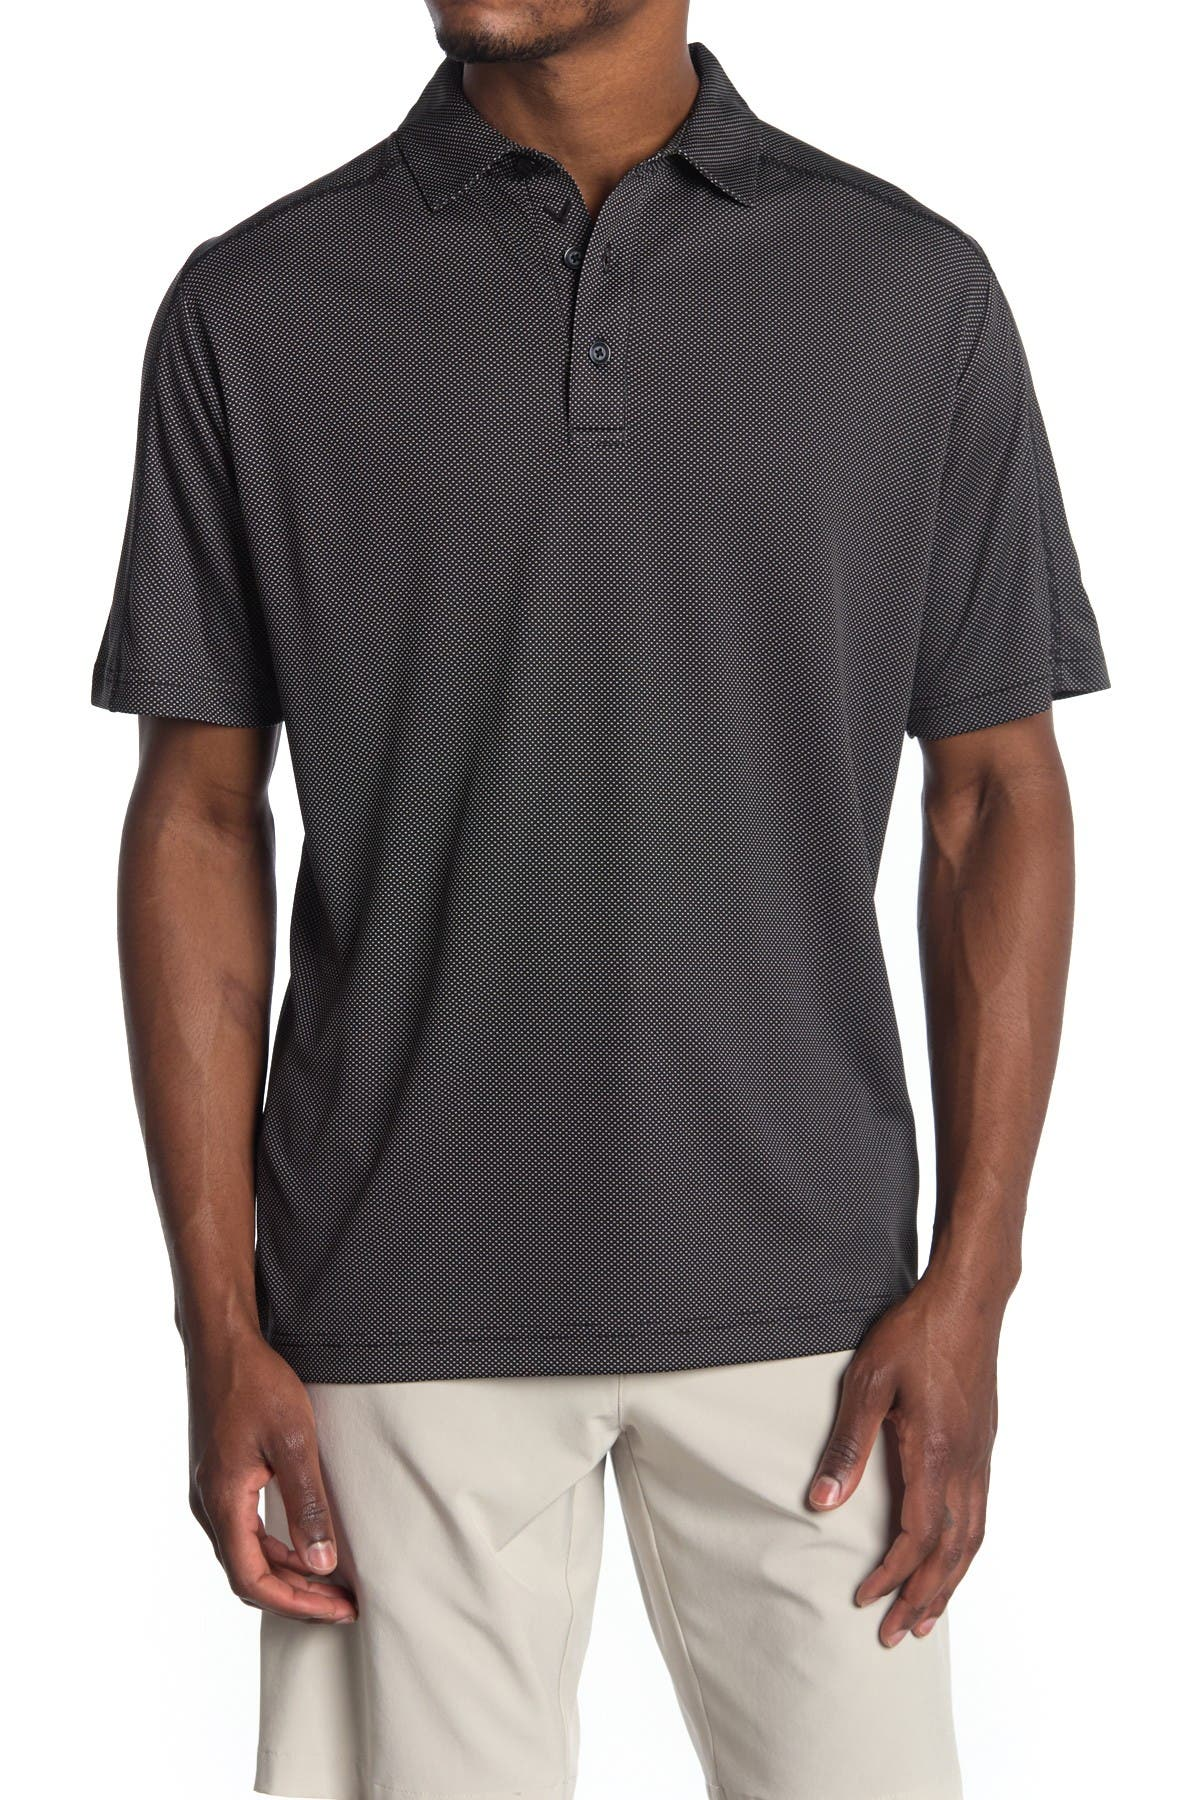 Image of CALLAWAY GOLF Printed Golf Polo